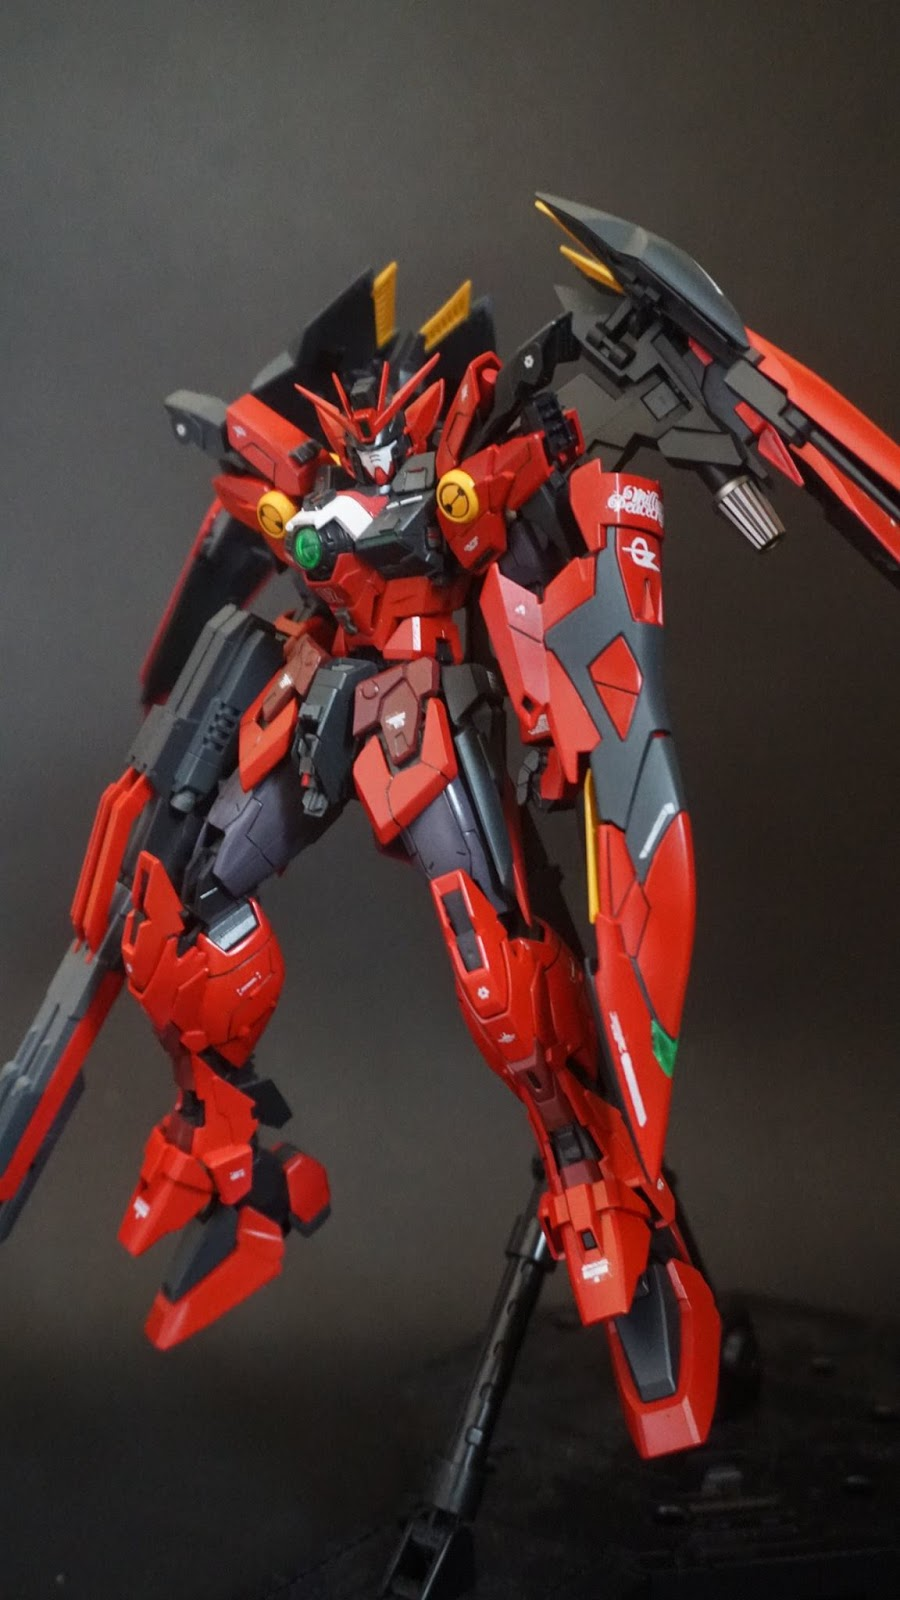 epyon gundam wing - photo #11